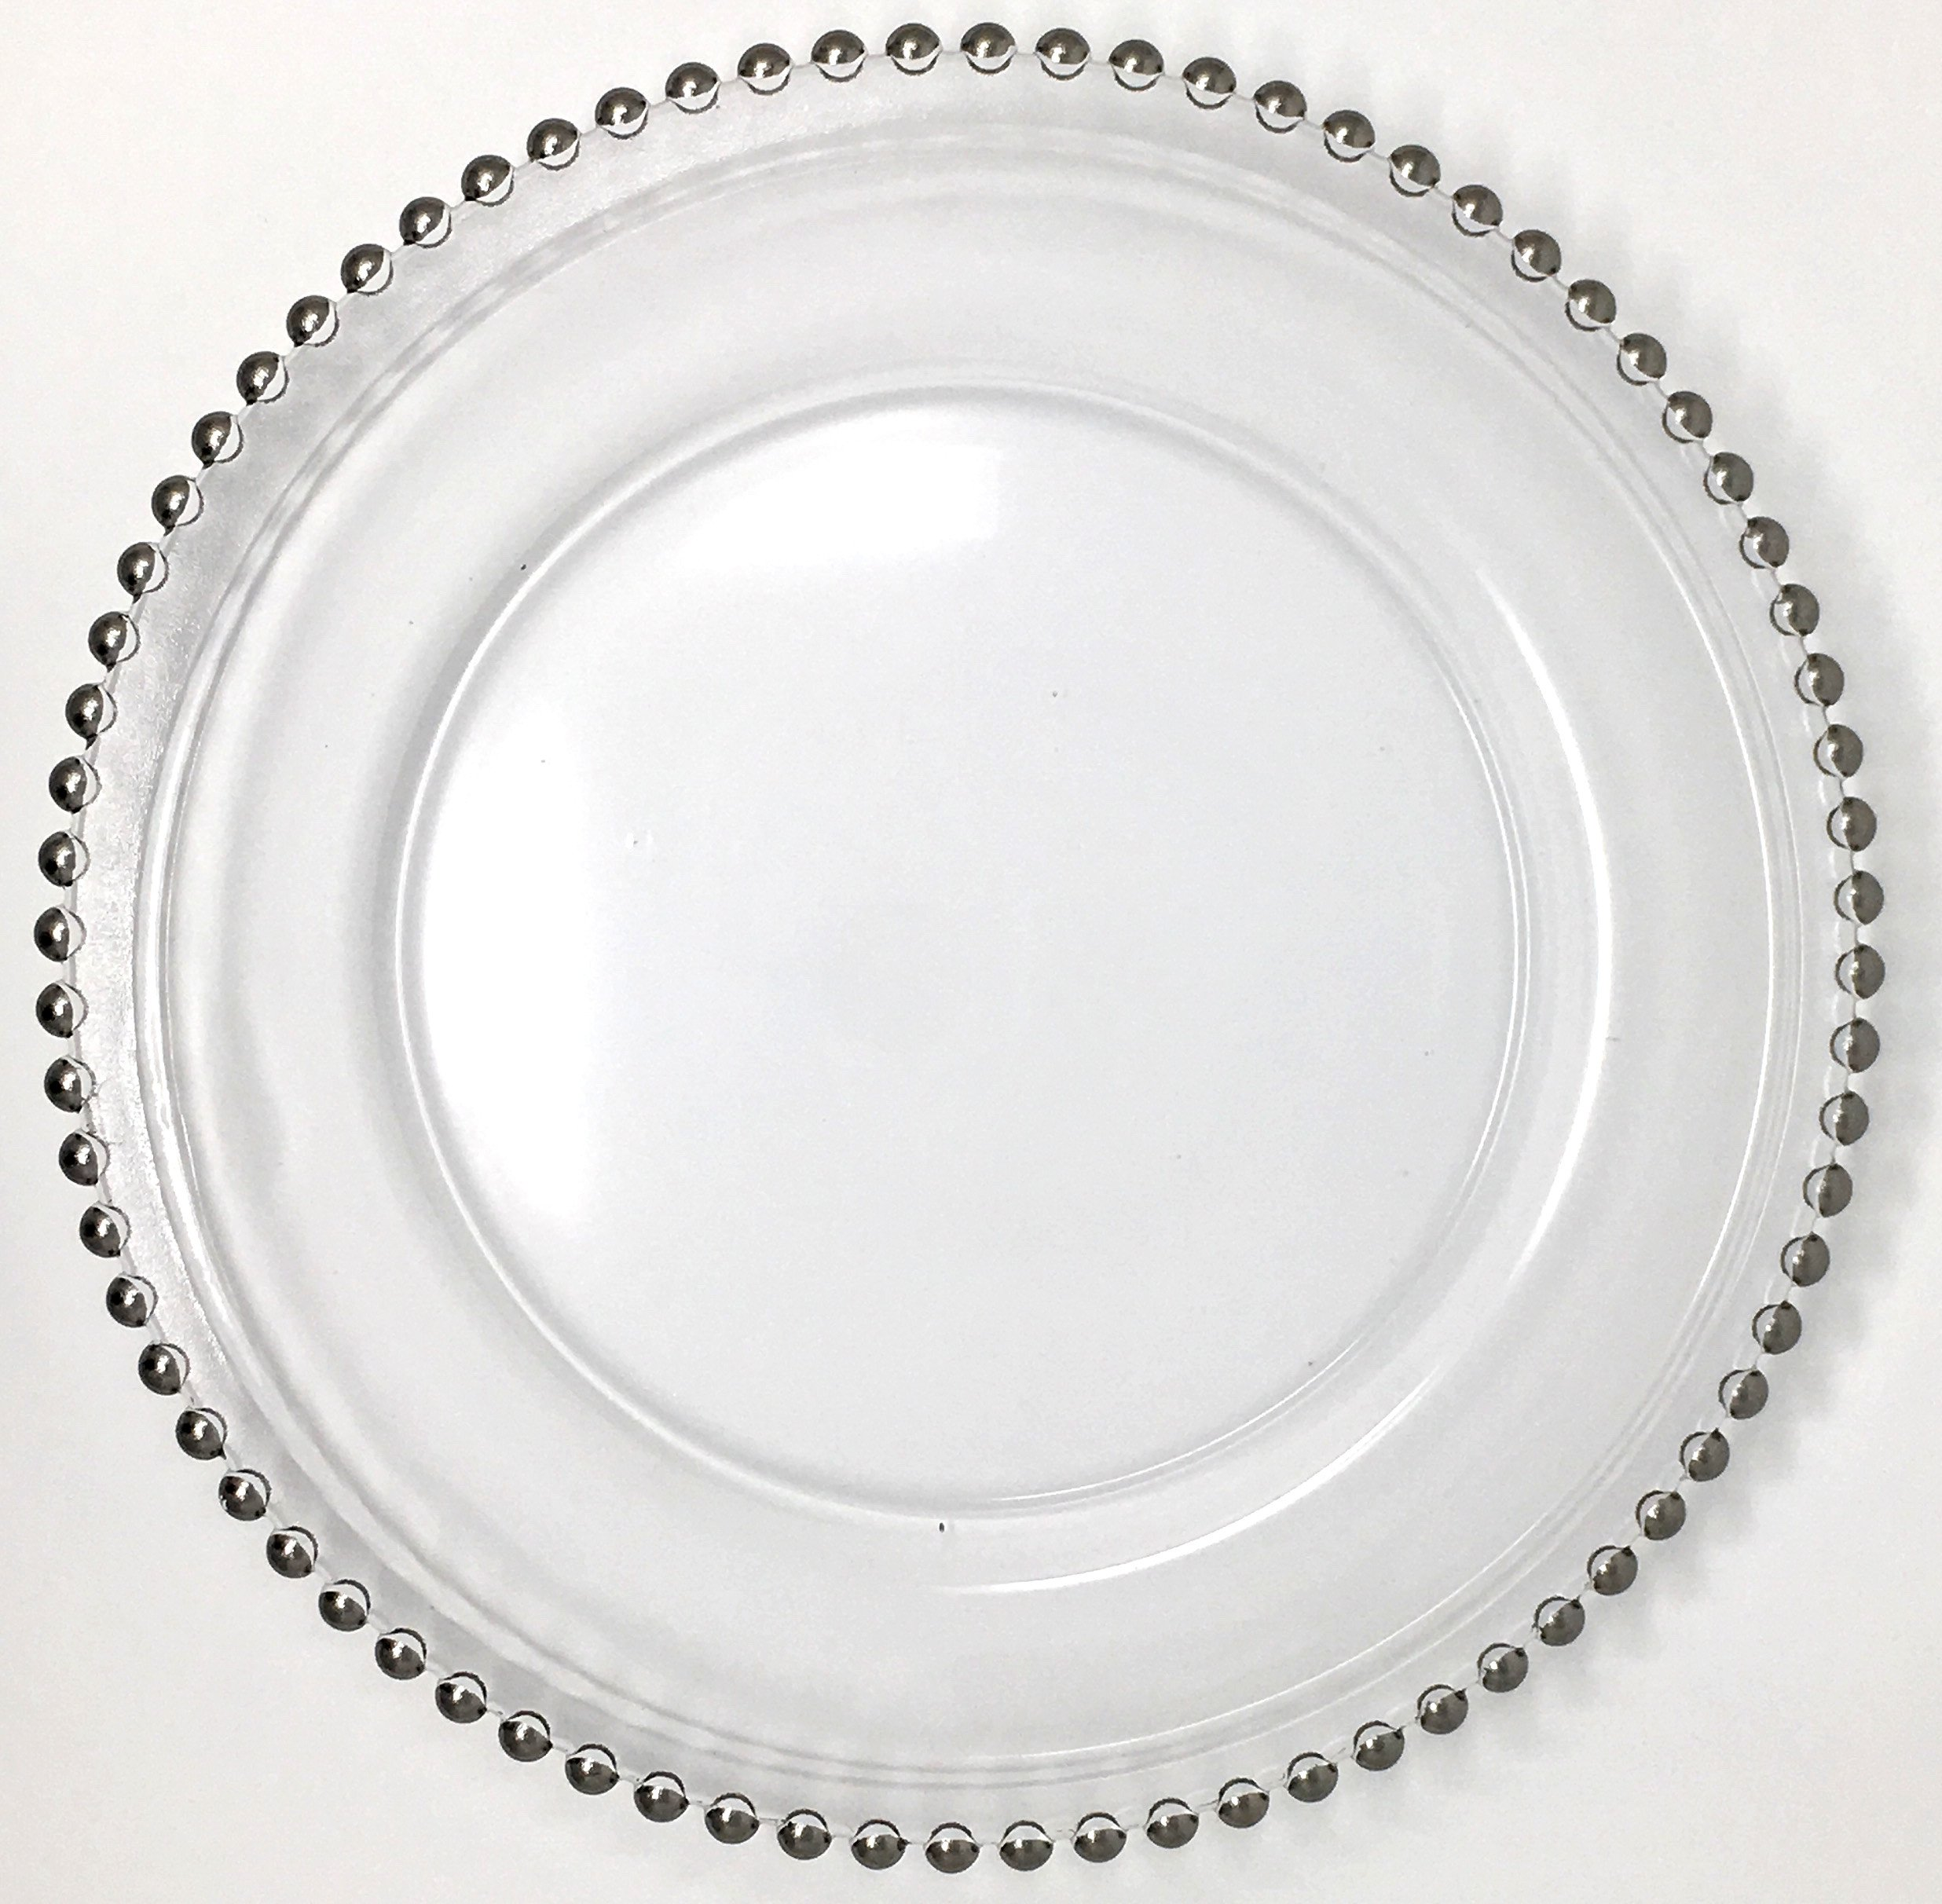 Beautiful Glass Dinnerware Formal 13-Inch Silver Beaded Rim Clear Glass Charger Plate Wedding Party Dinner Modern Appeal Glass Plates (12)